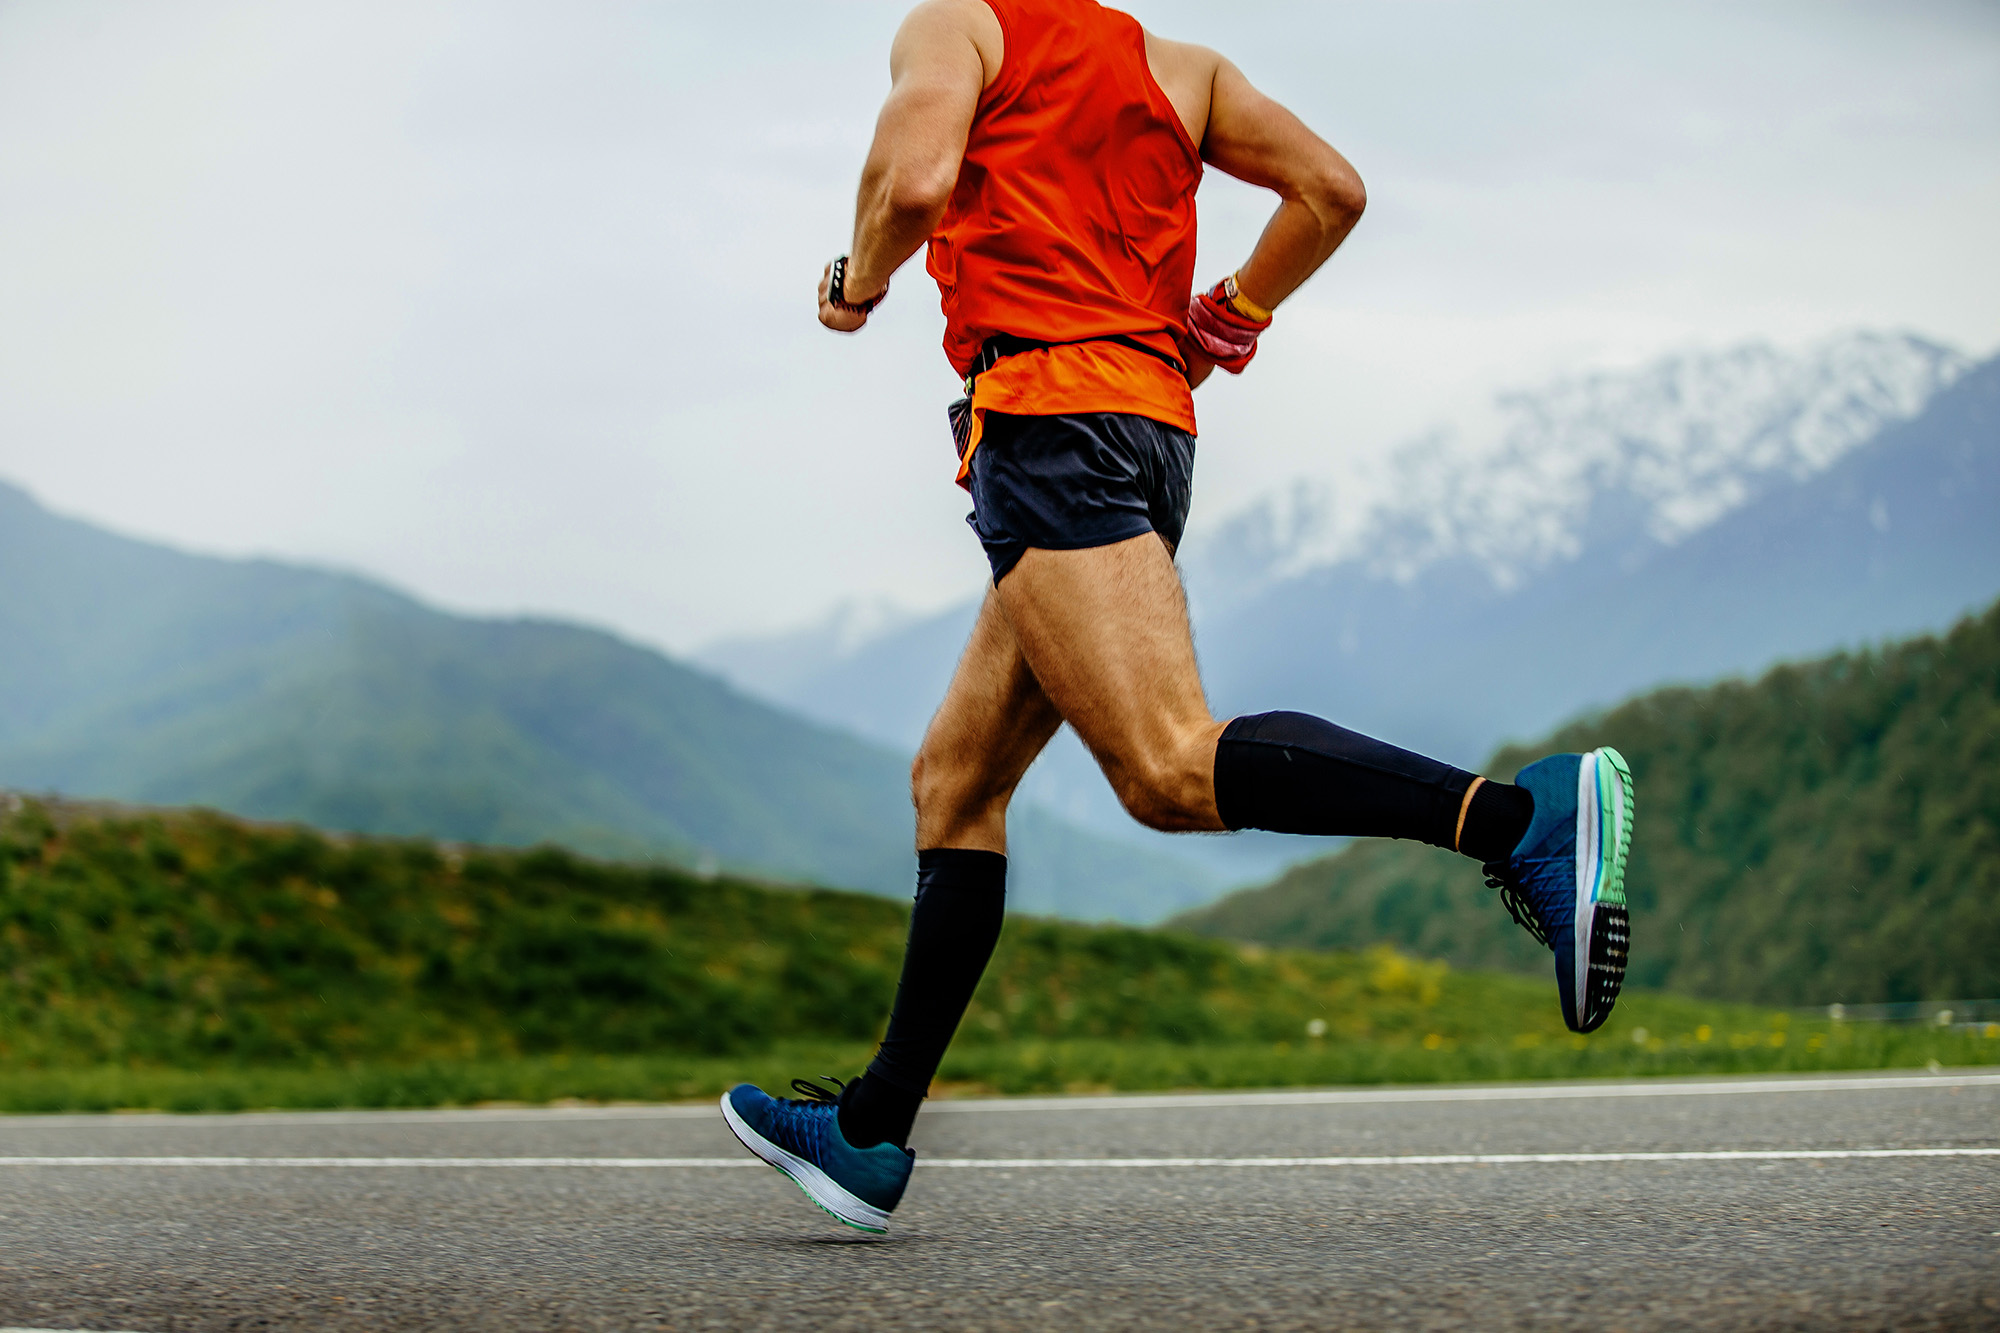 Compression Socks For Runners - Improve